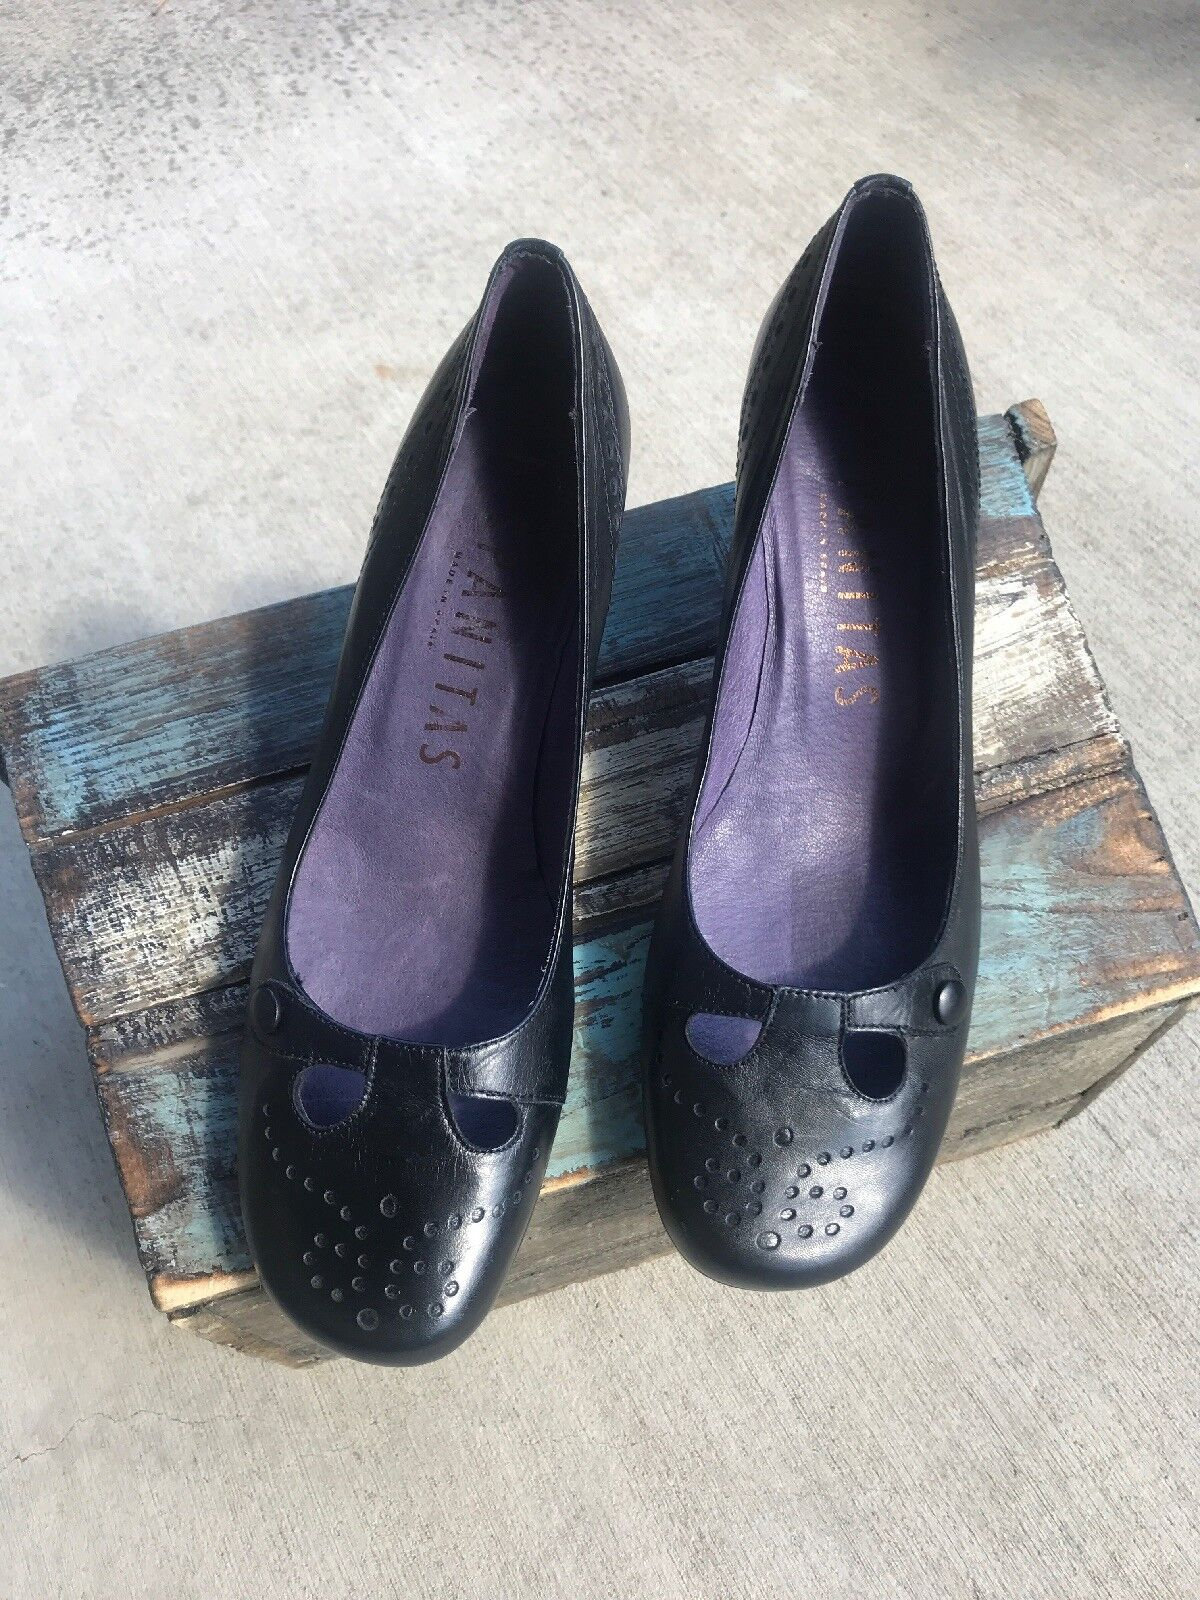 Hispanitas 40 Old Testa Black Rich Leather Kitten Heels shoes  170